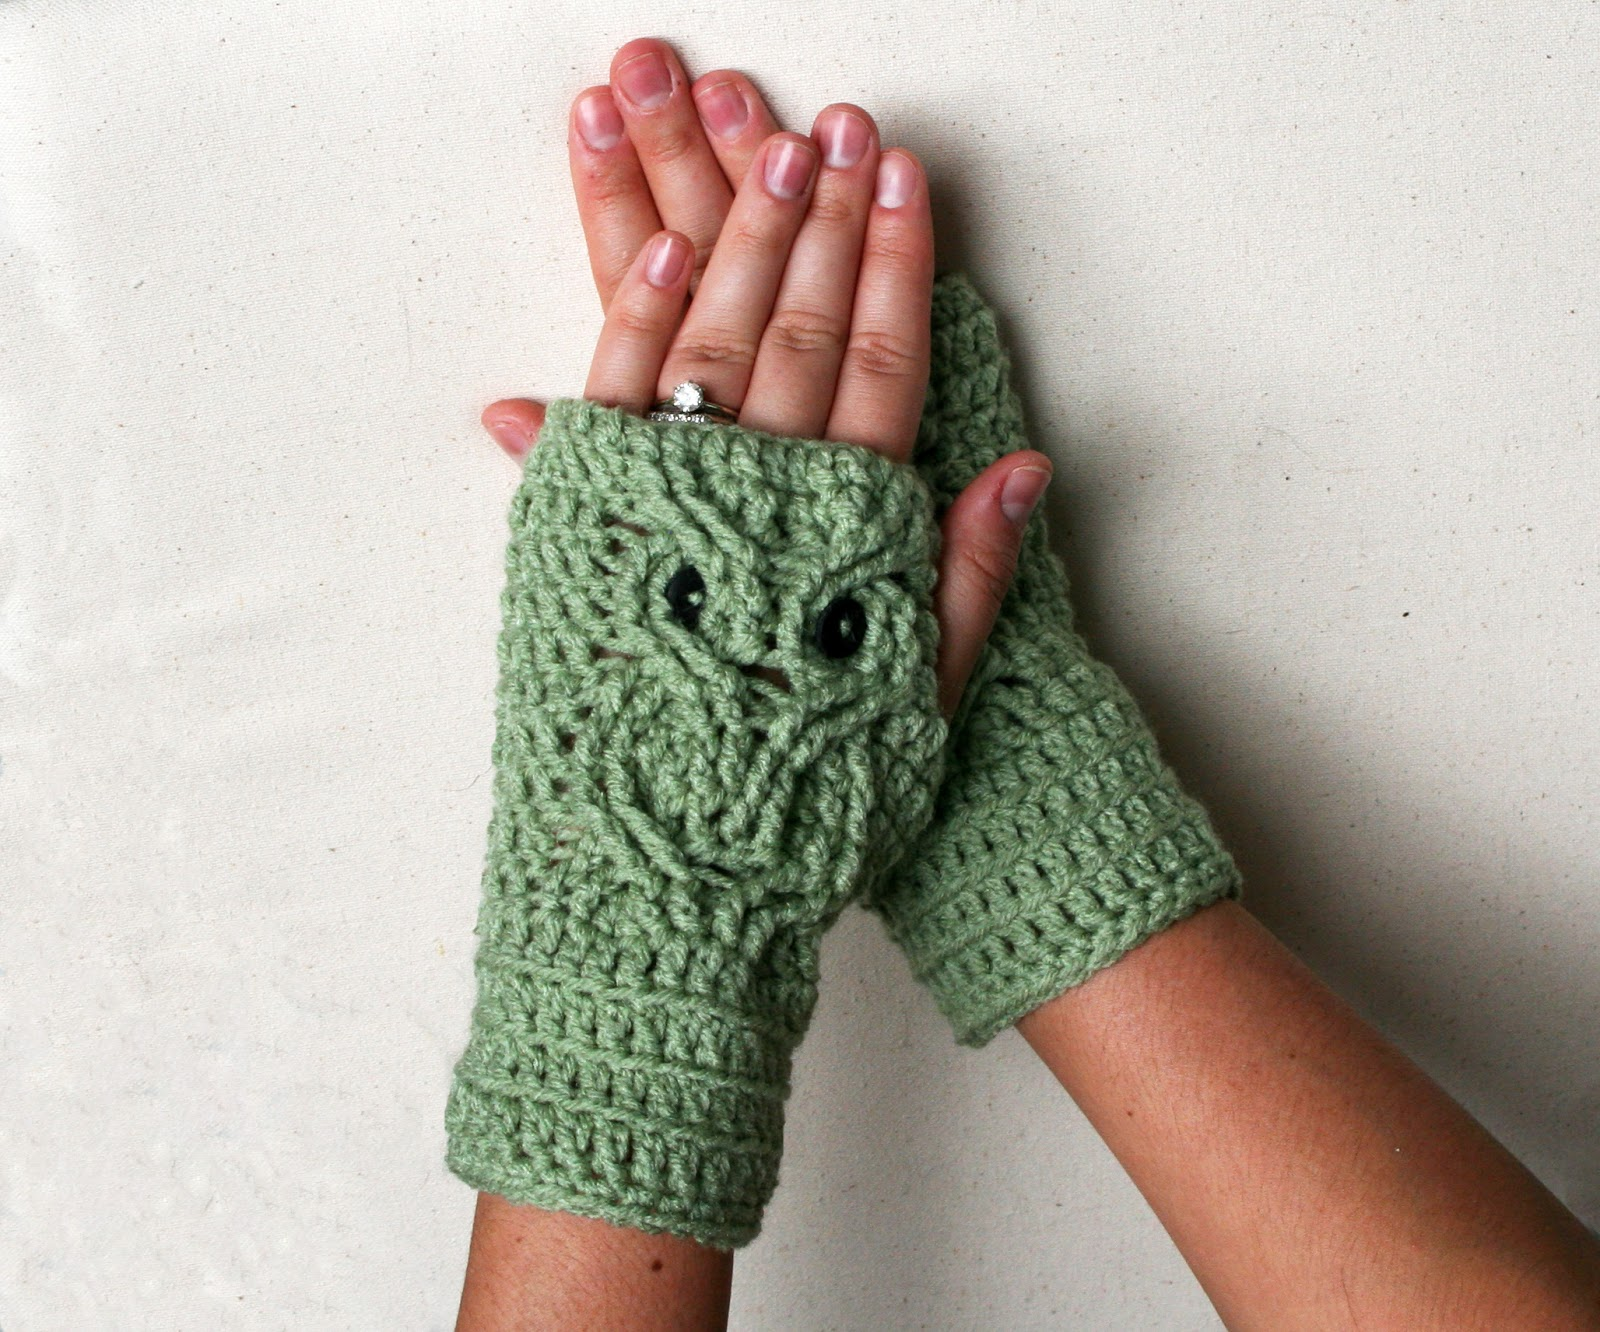 Free Crochet Pattern Gloves Fingerless : Tampa Bay Crochet: Free Crochet Pattern: Owl Fingerless Gloves